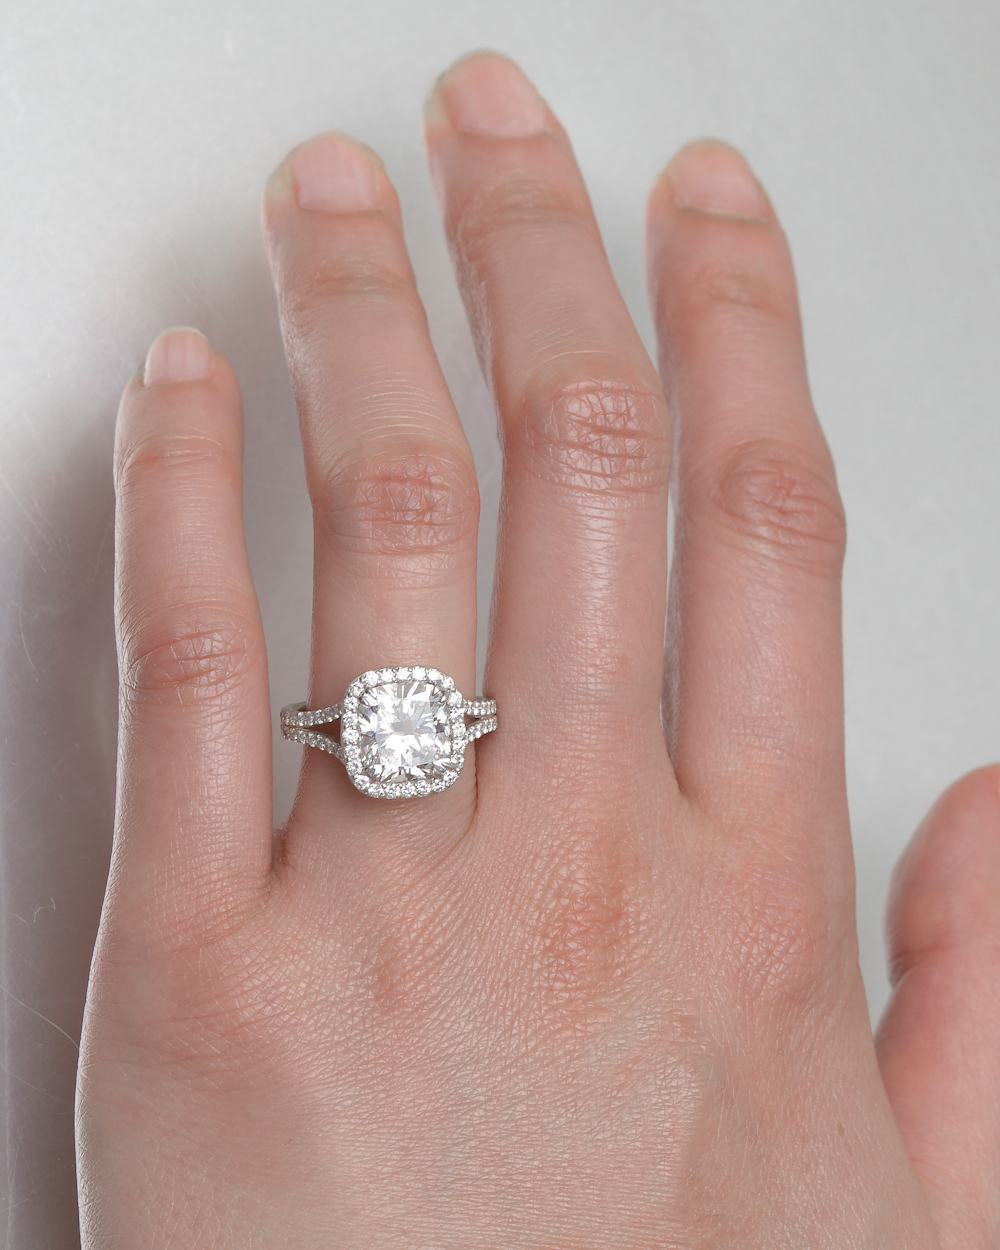 3.01 Carat Cushion-Cut Diamond Ring | Betteridge